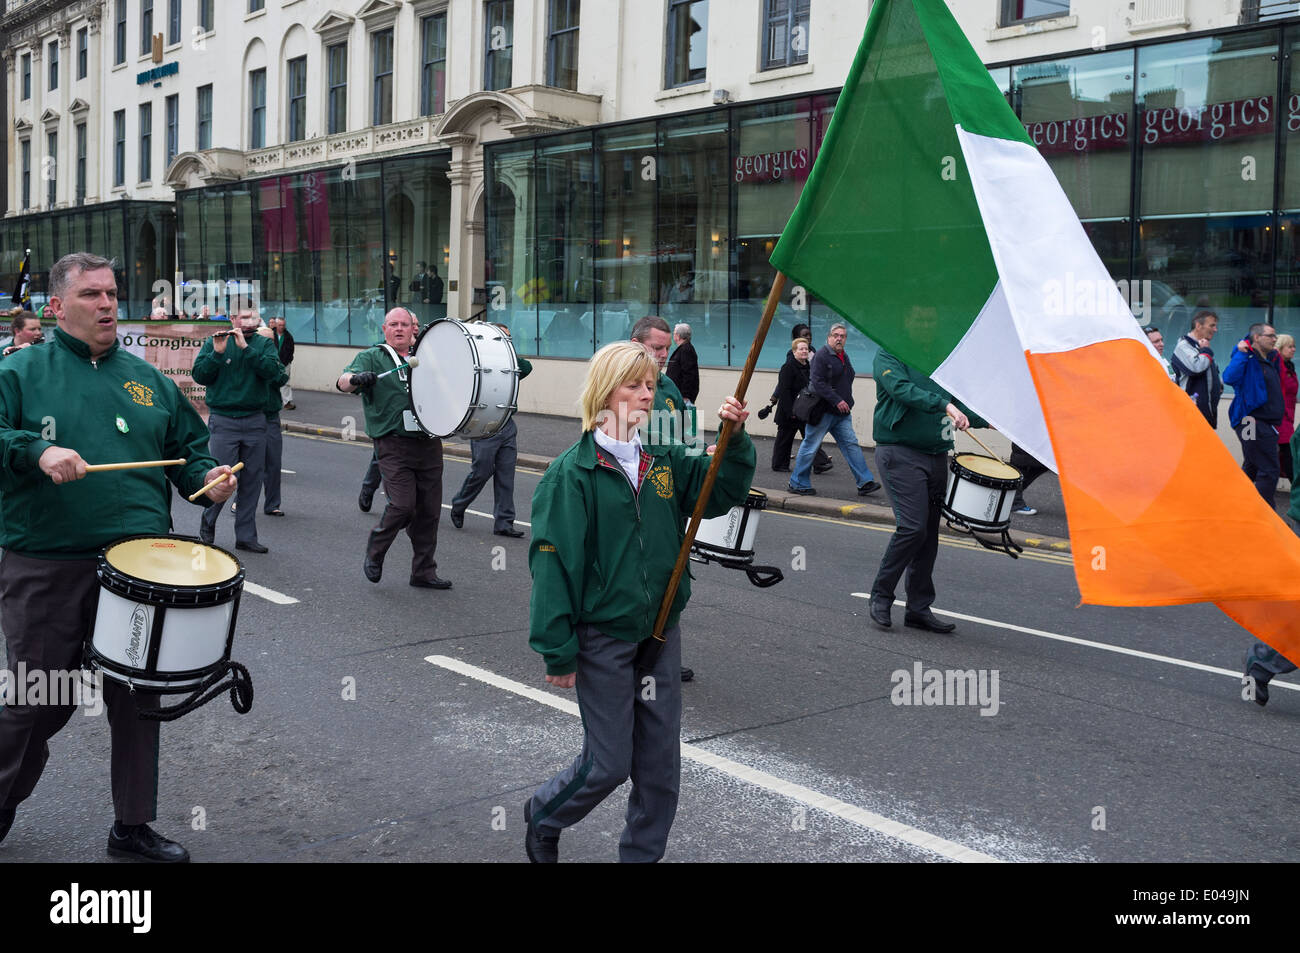 Members of the pro-Irish republican supporting Cairde na Heireann organization parading through Glasgow city  Scotland, UK - Stock Image